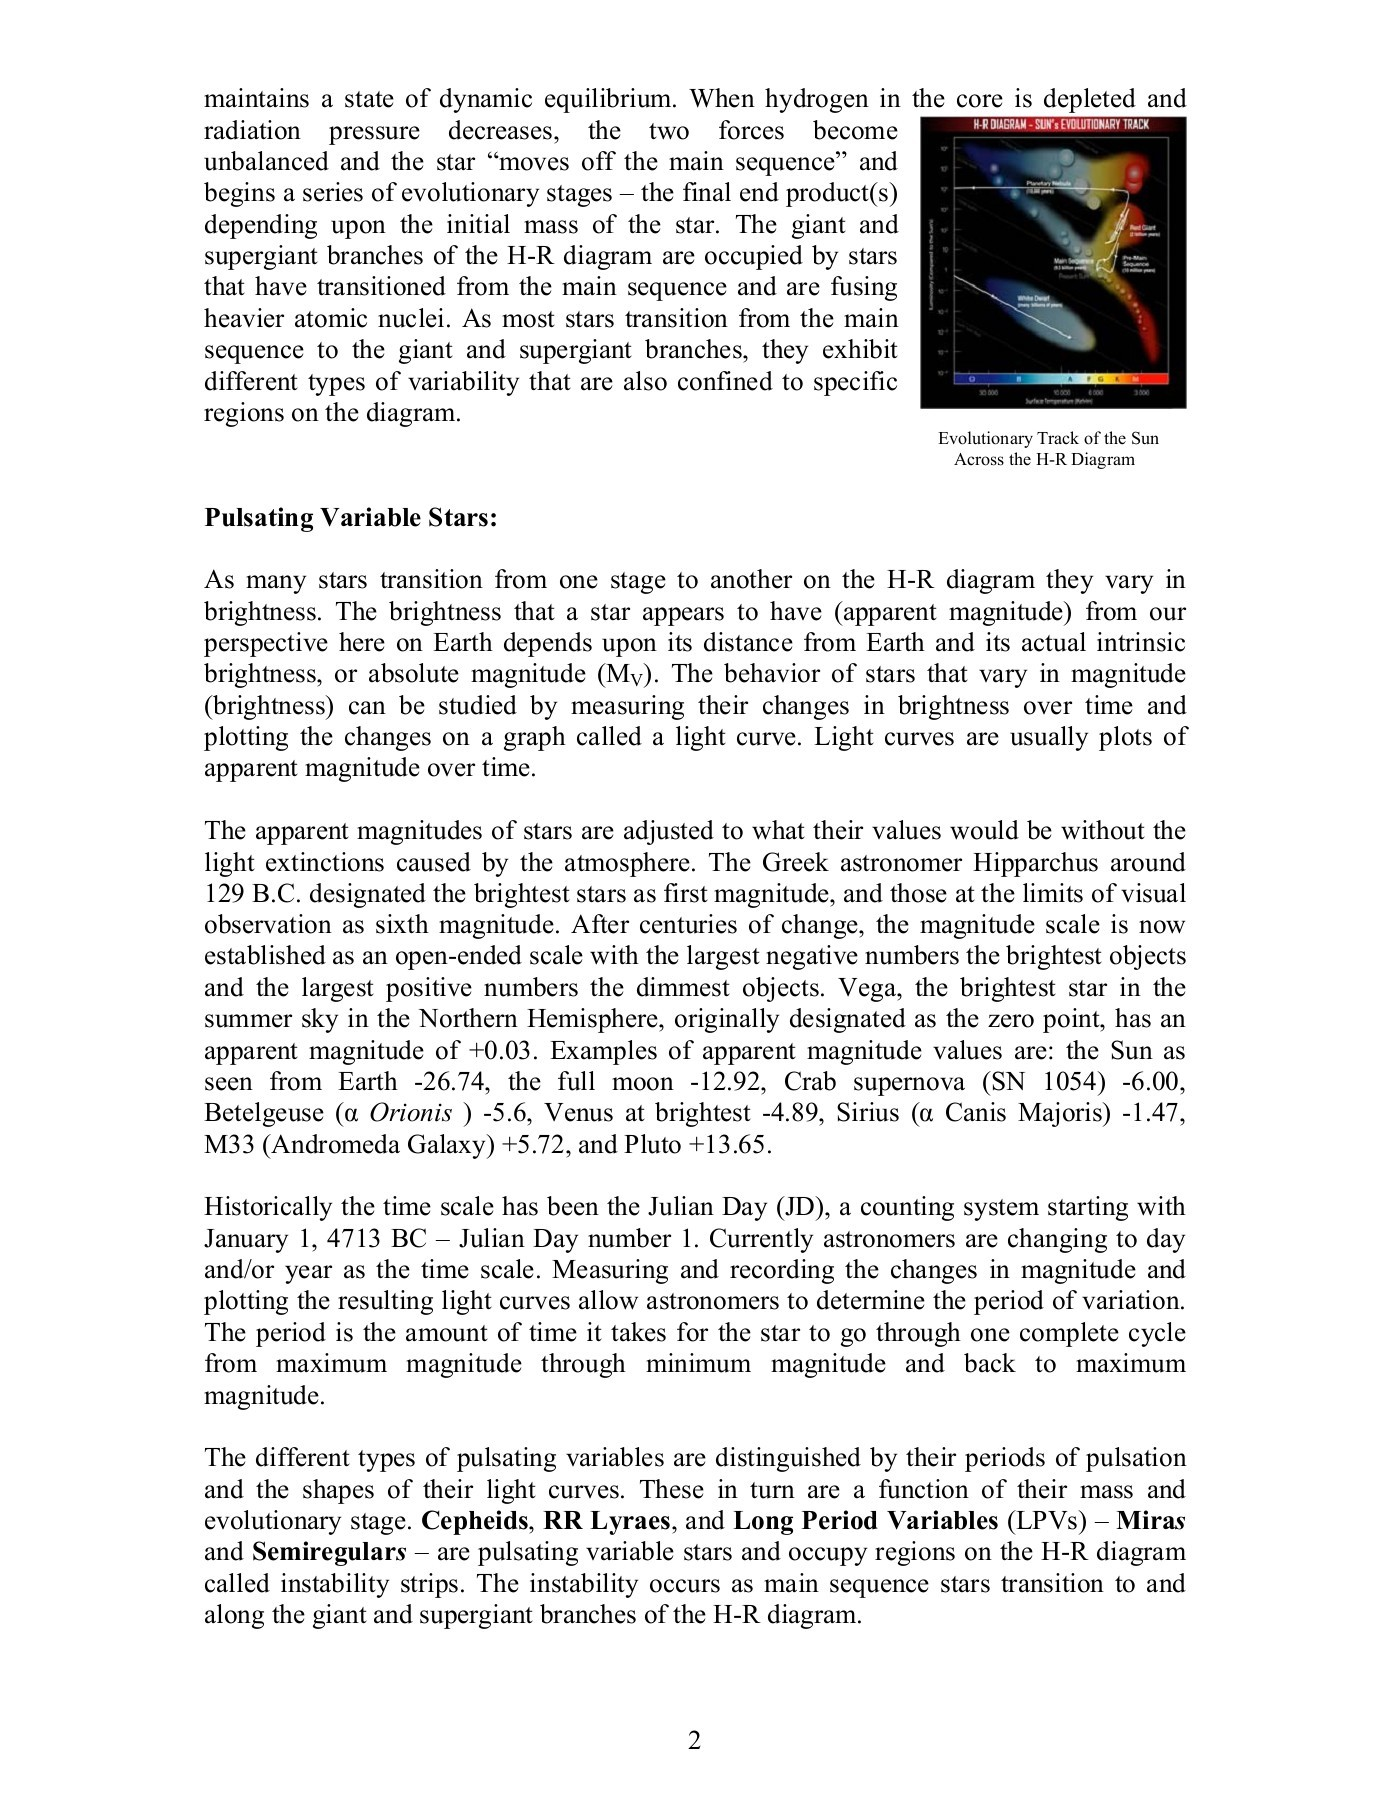 hight resolution of plotting variable stars on the h r diagram activity pages 1 7 text version fliphtml5